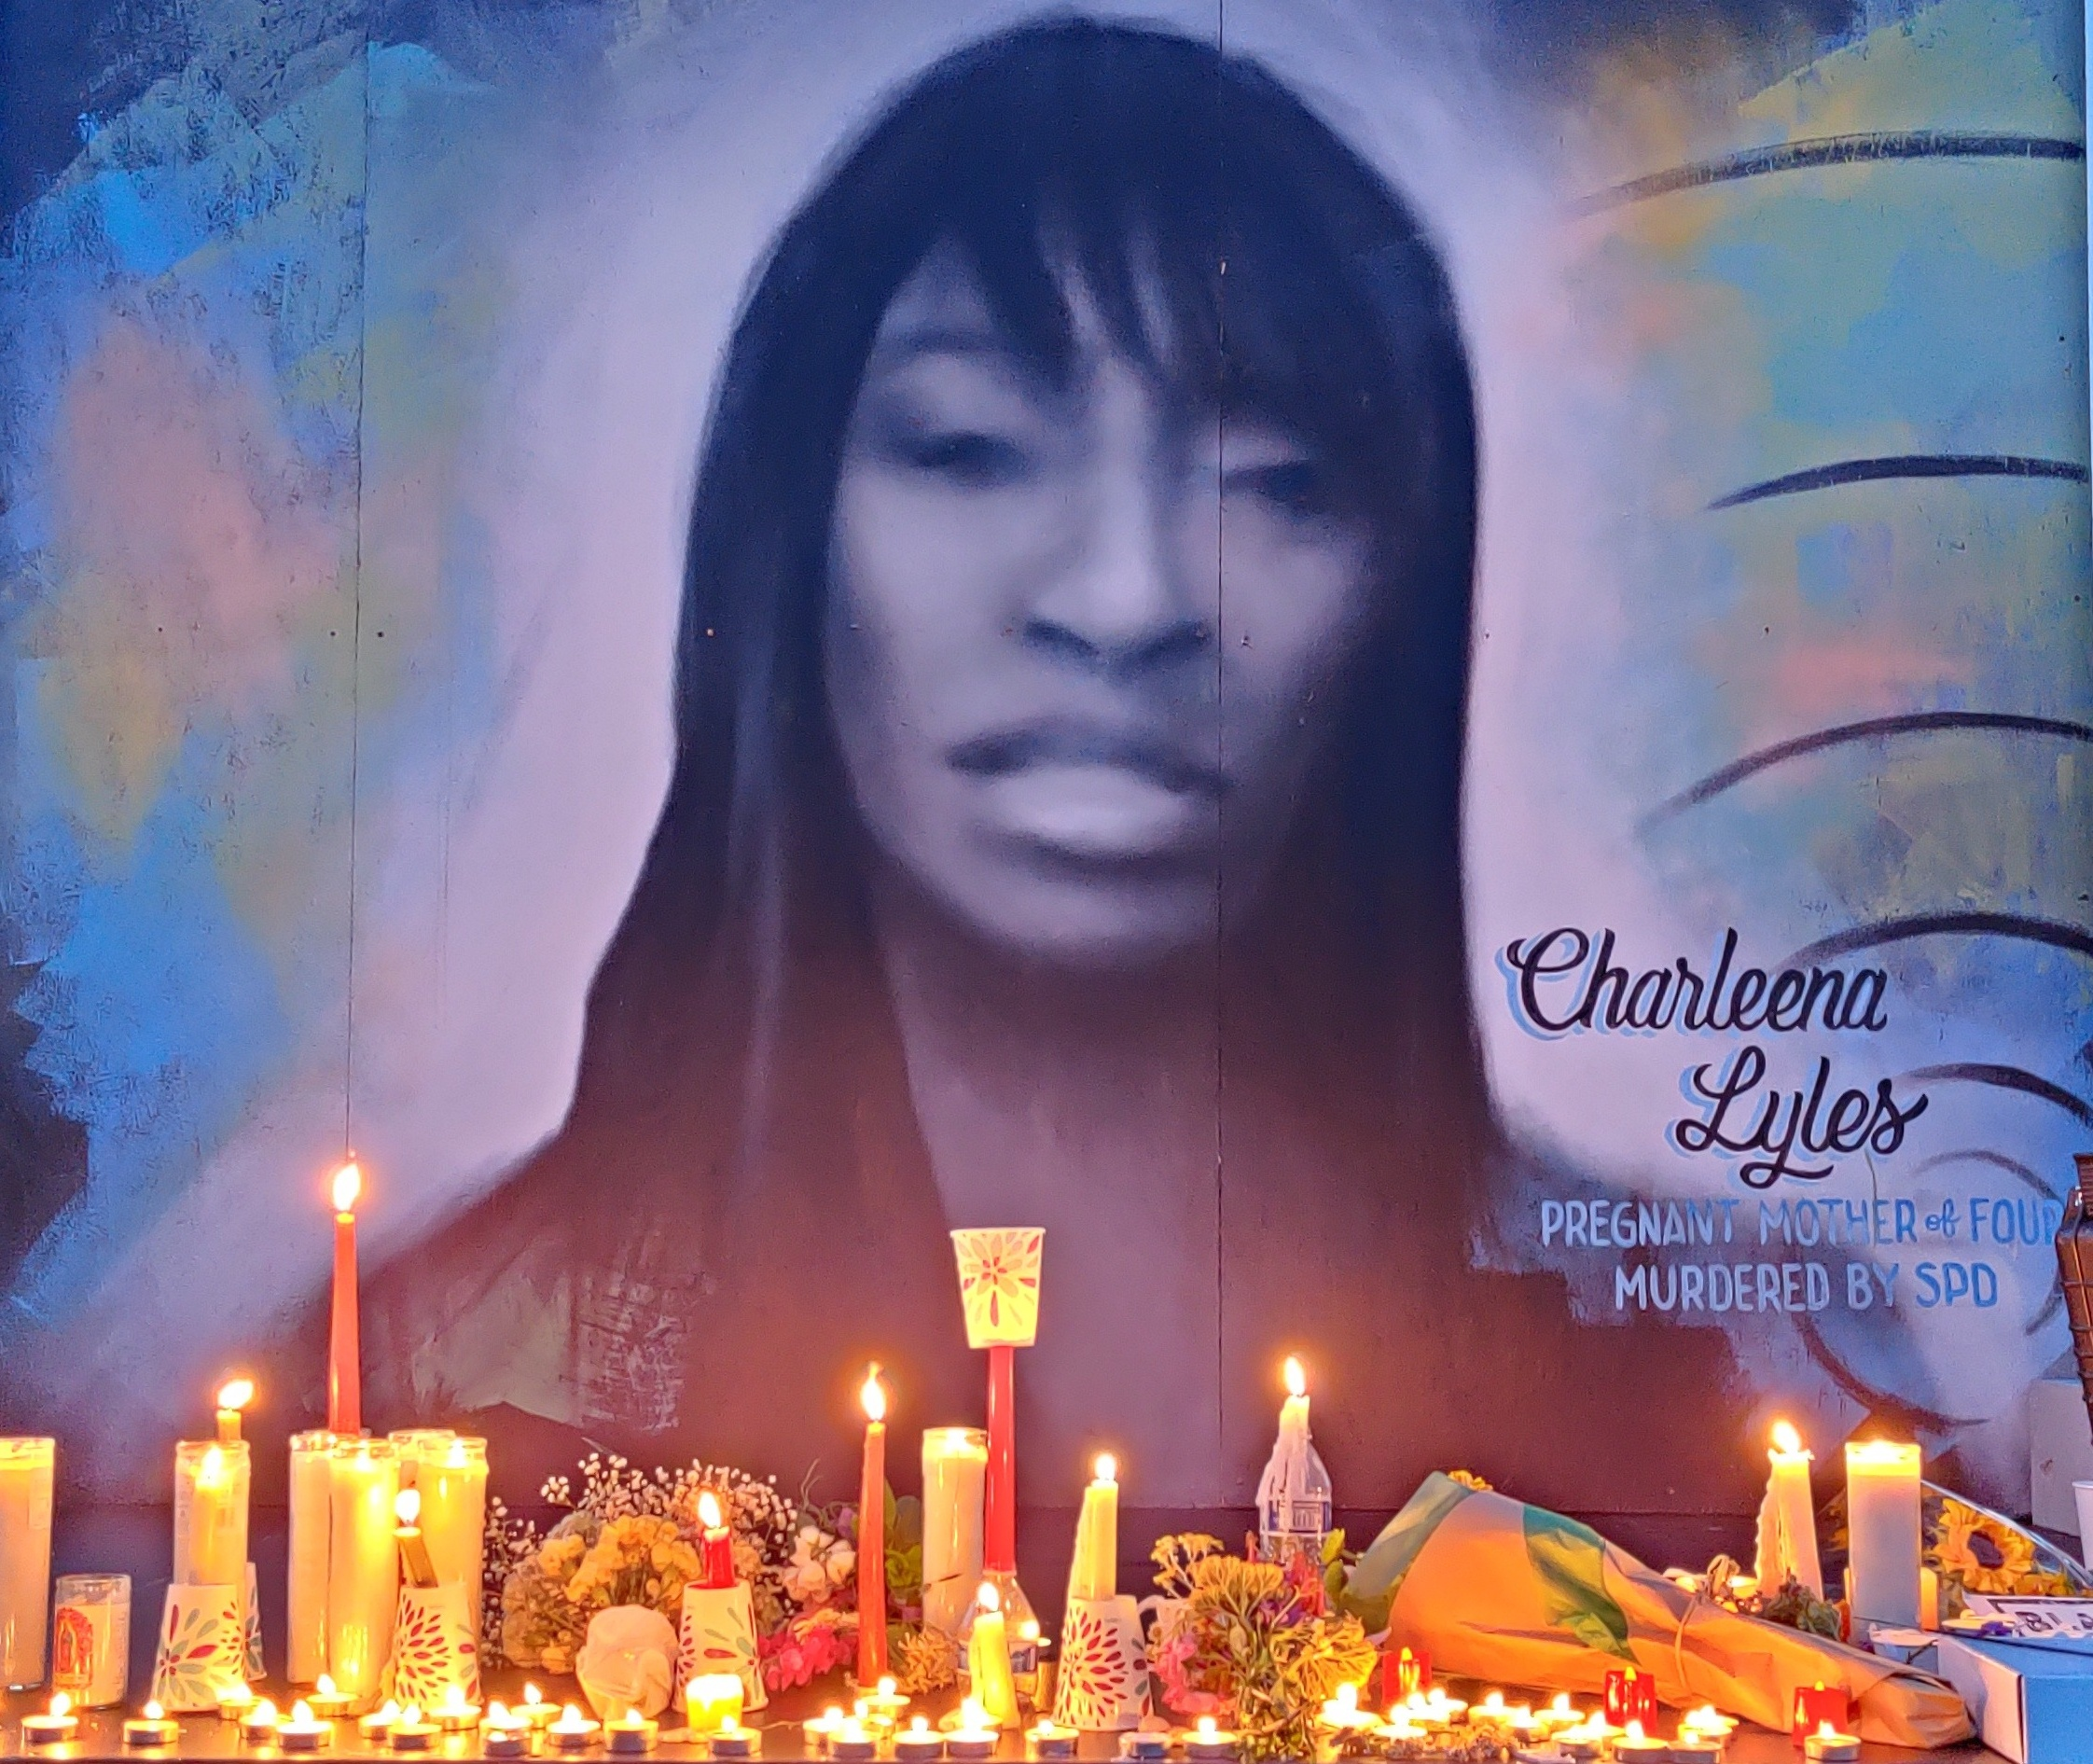 Charleena Lyles vigil with candles